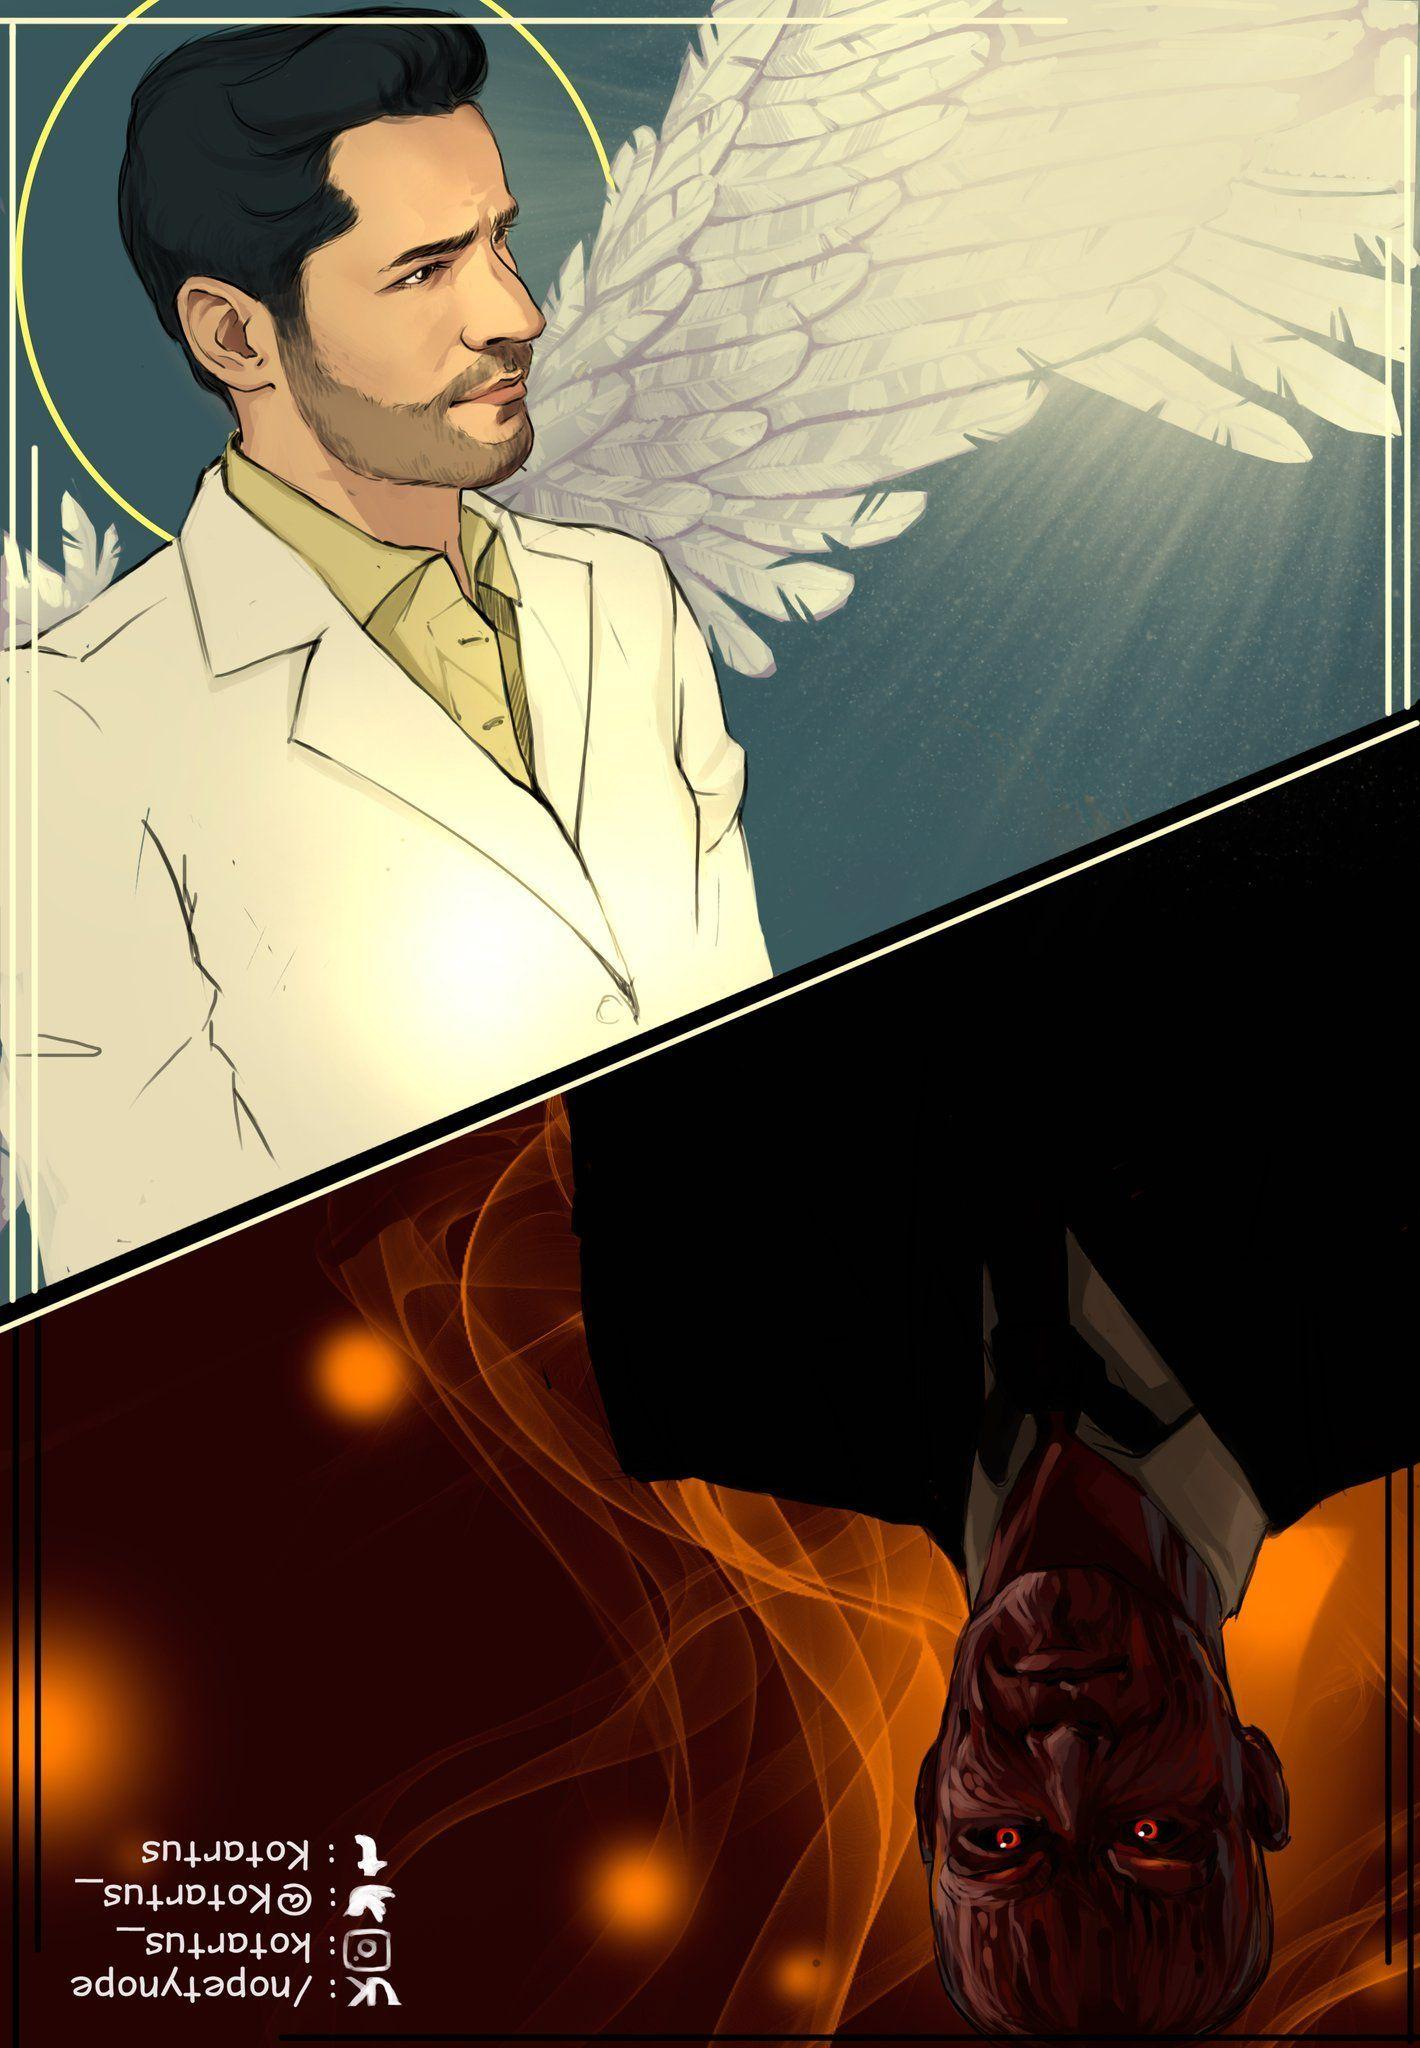 Pin by Jodie Chadwick on Lucifer | Pinterest | Tom ellis lucifer ...